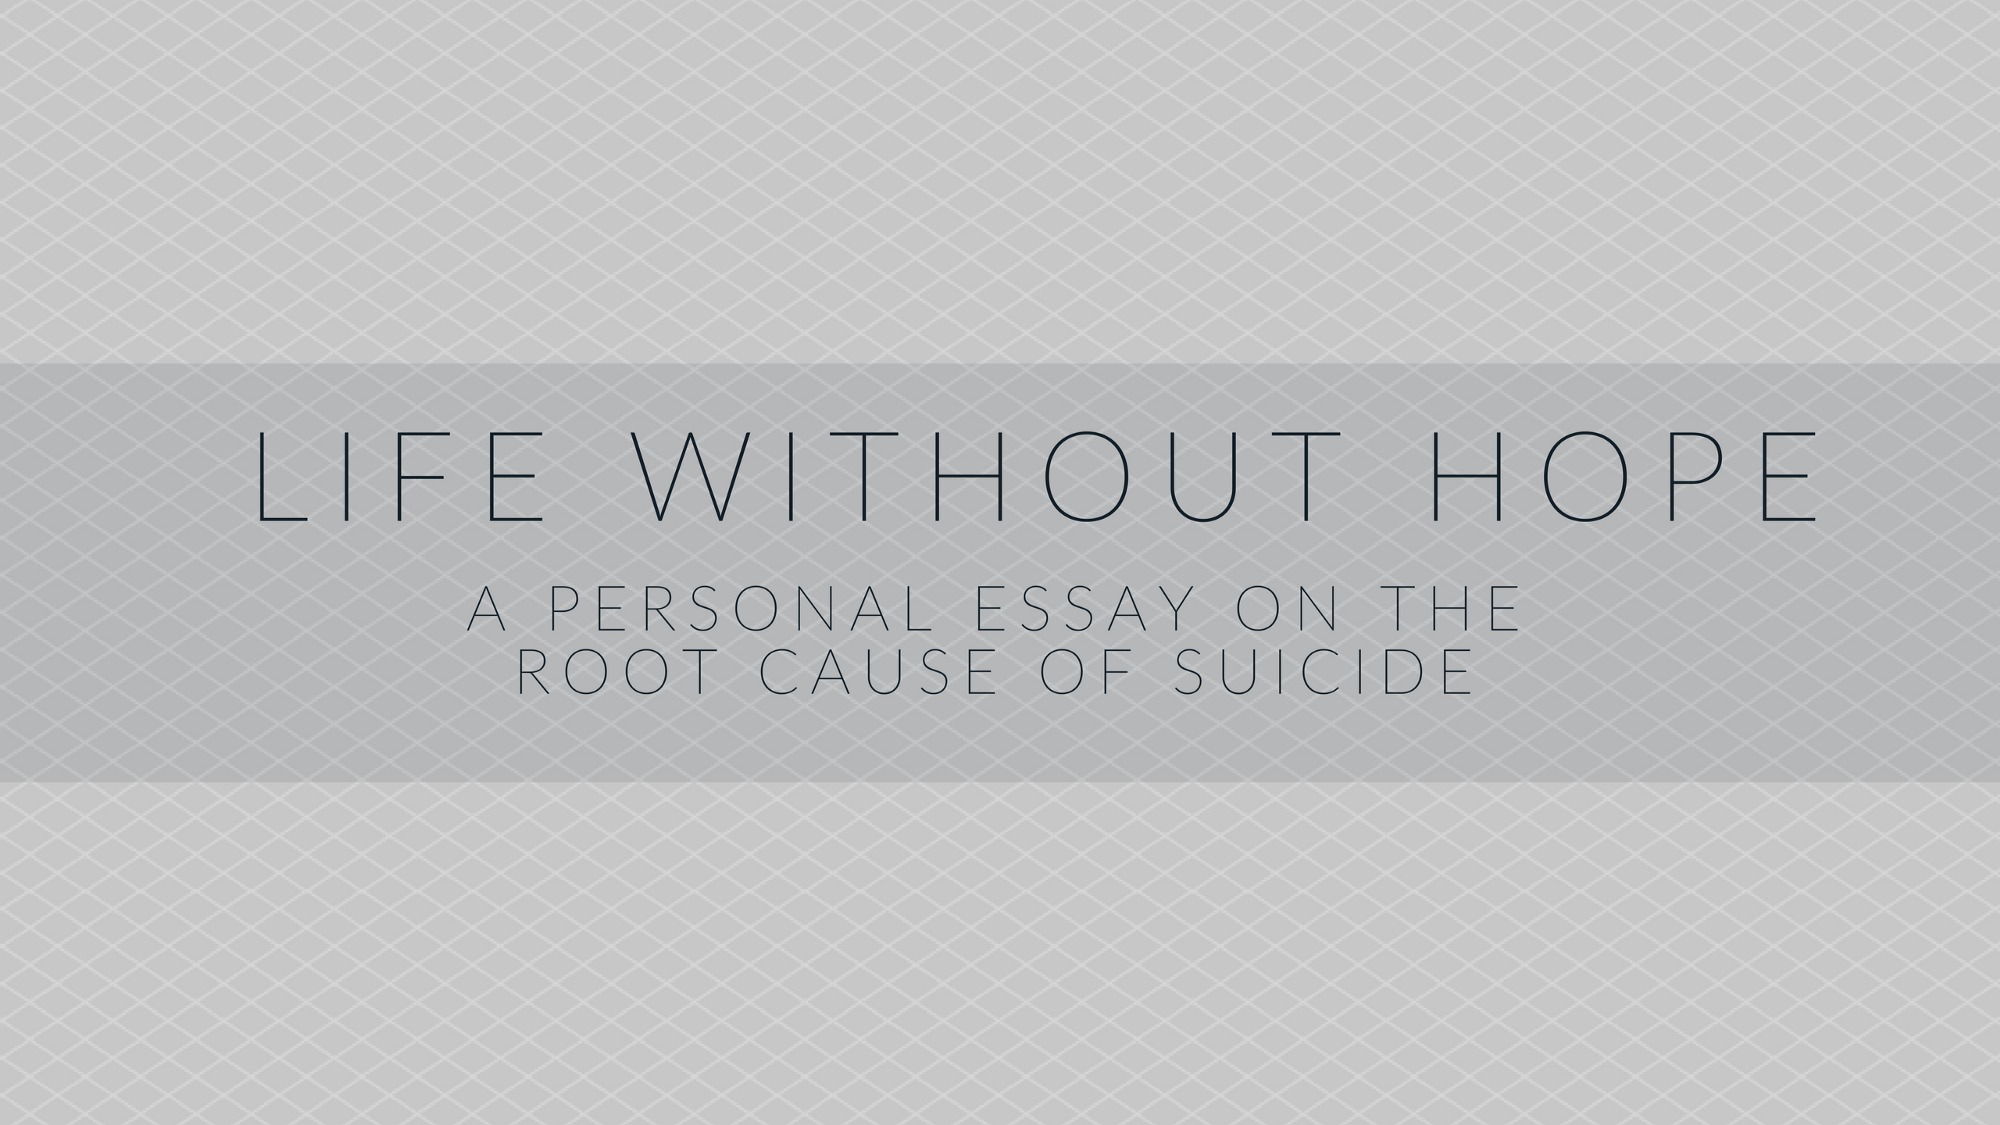 life out hope a personal essay addressing the root cause of  life out hope a personal essay addressing the root cause of suicide